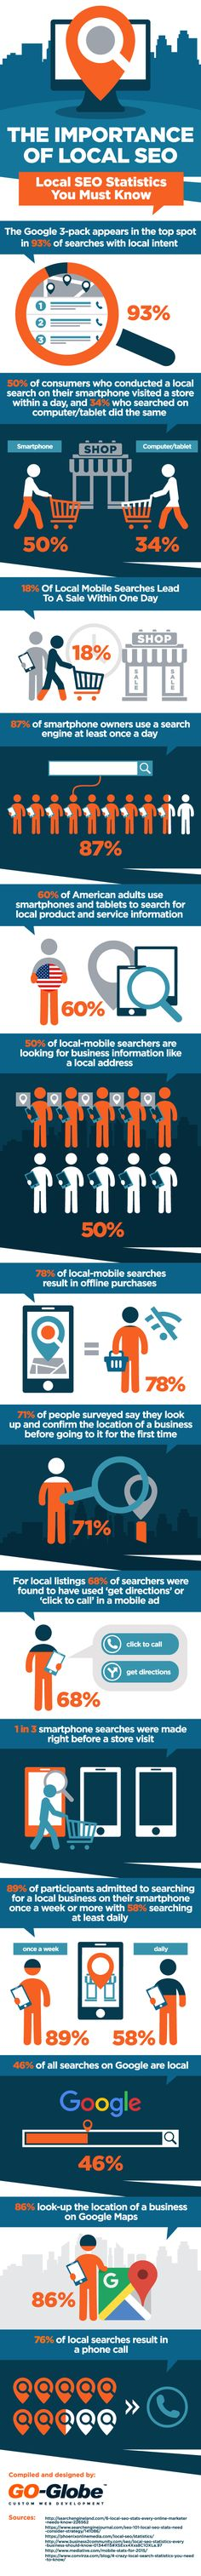 Think You Don't Need Local SEO? 18 Stats That Show You Do #Infographic